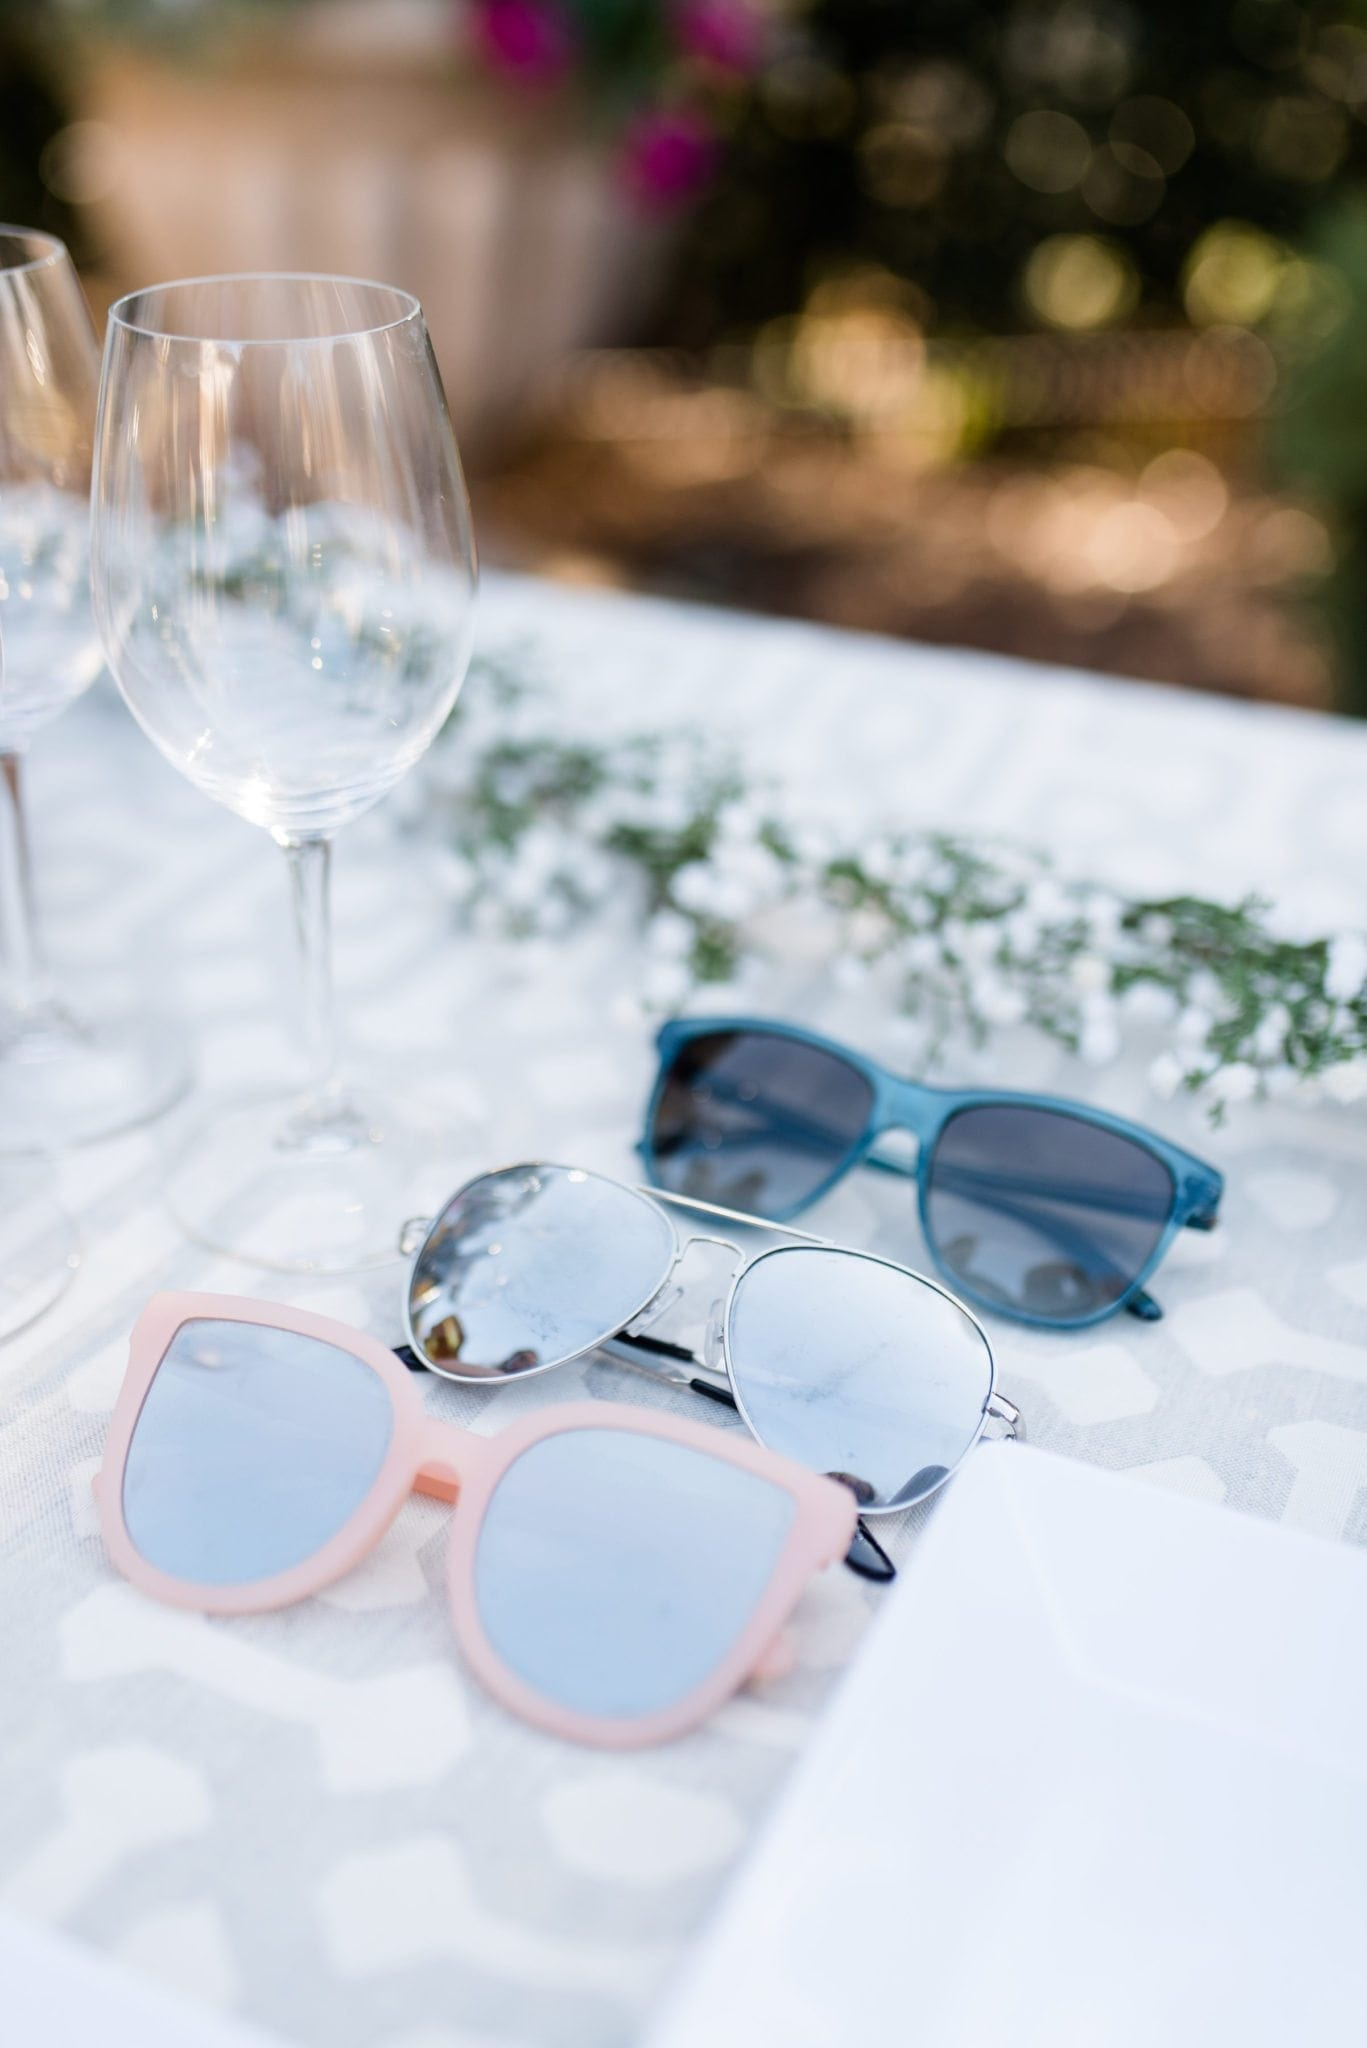 How to host a pool party. Have lots of sunglasses laid out for guests. Make parties easy for friends to come over. Pink Quay sunglasses, Aviators and more!